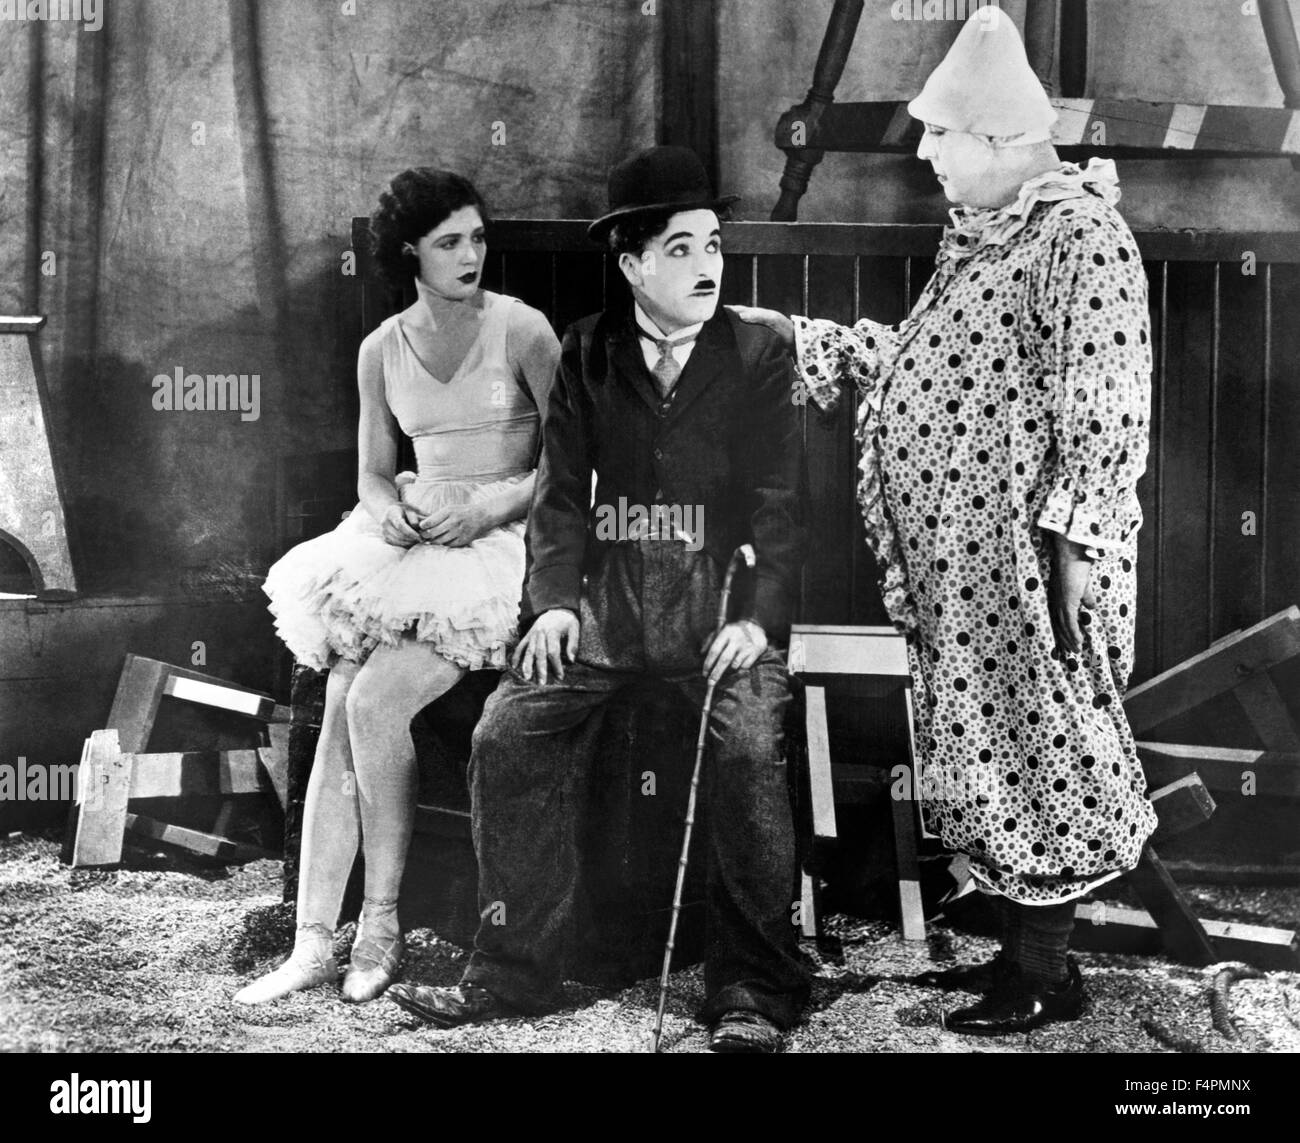 Merna Kennedy, Charles Chaplin and Harry Crocker / The Circus / 1928 directed by Charles Chaplin [United Artists] - Stock Image